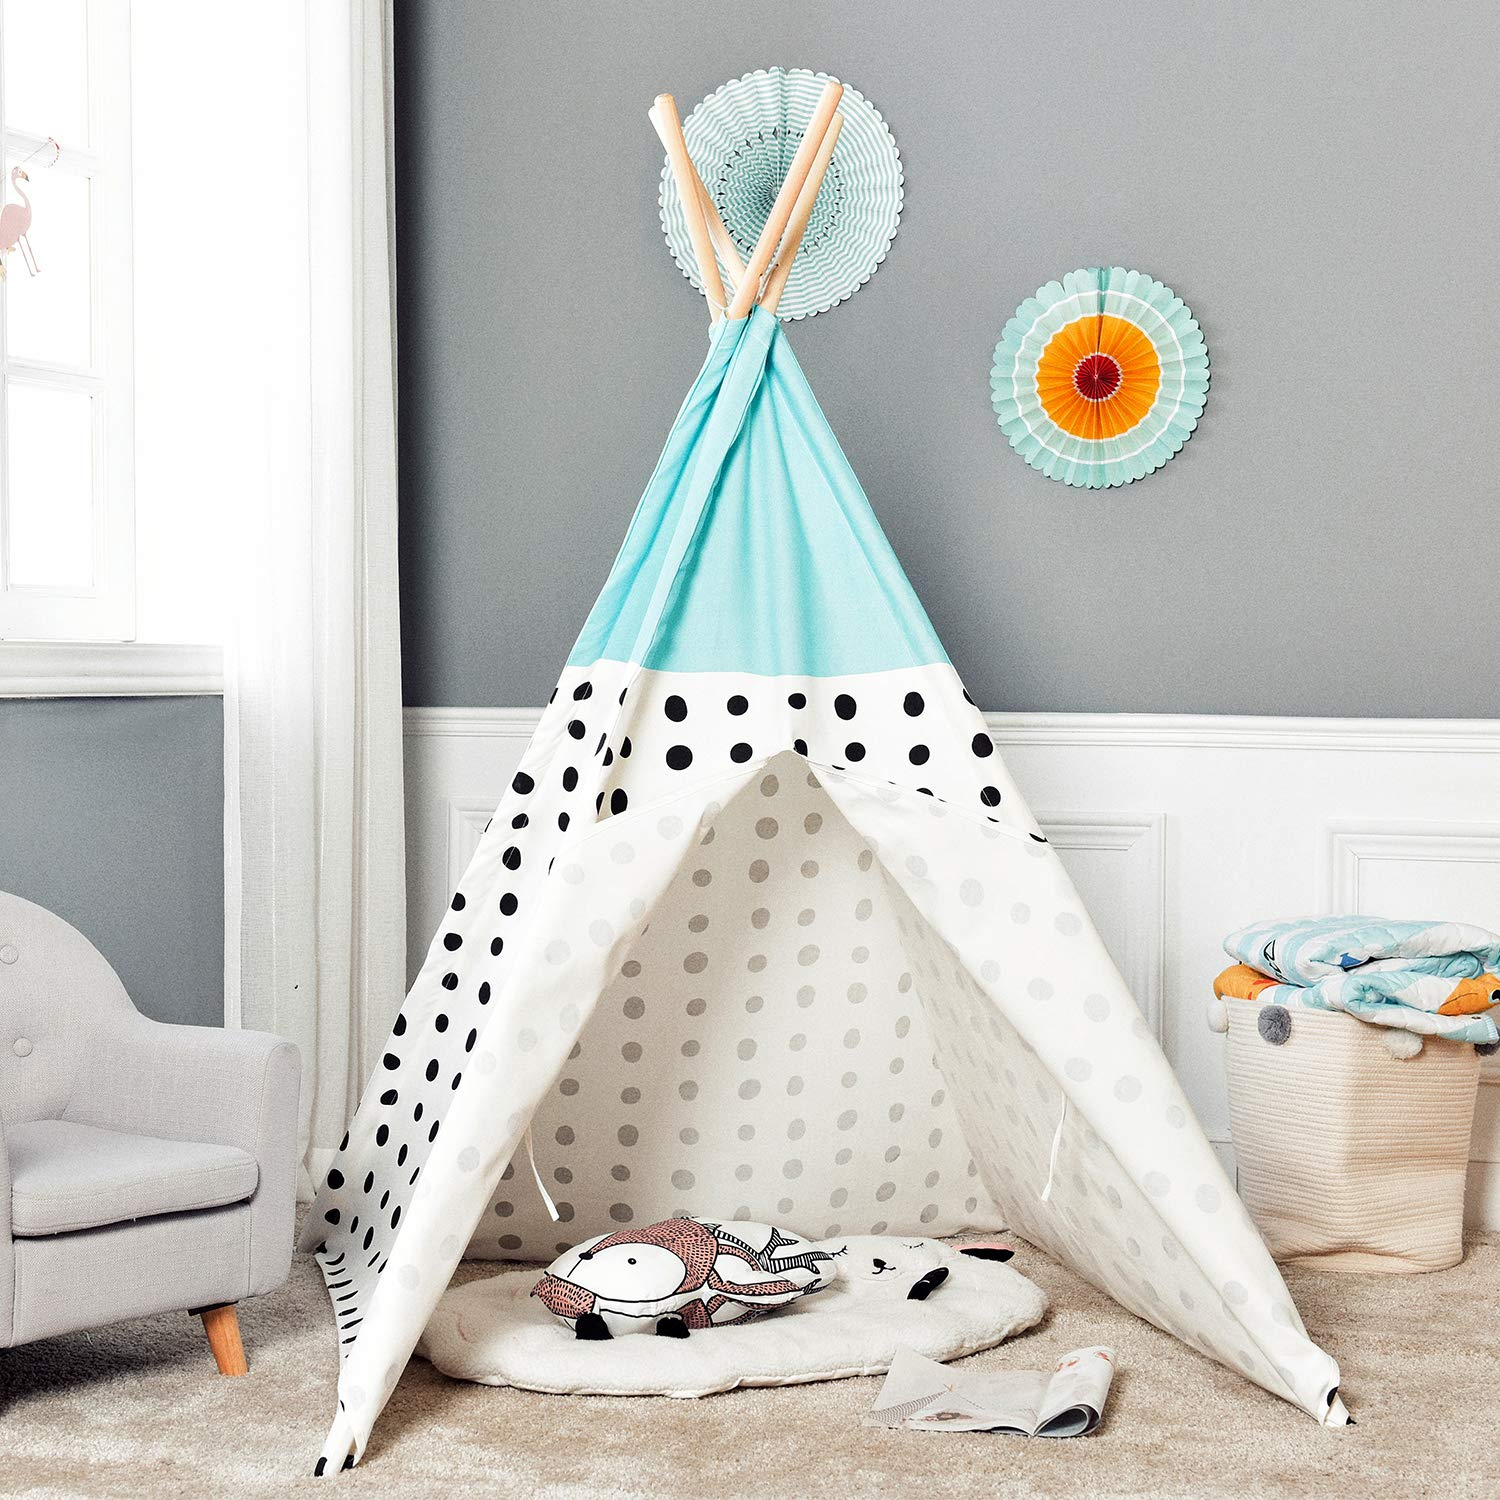 Asweets Teepee Tent for Kids Teepee Play Tent Mat for Boys Indoor Outdoor Play House Tent Indian Canvas Tipi Tent Blue Top Black Point